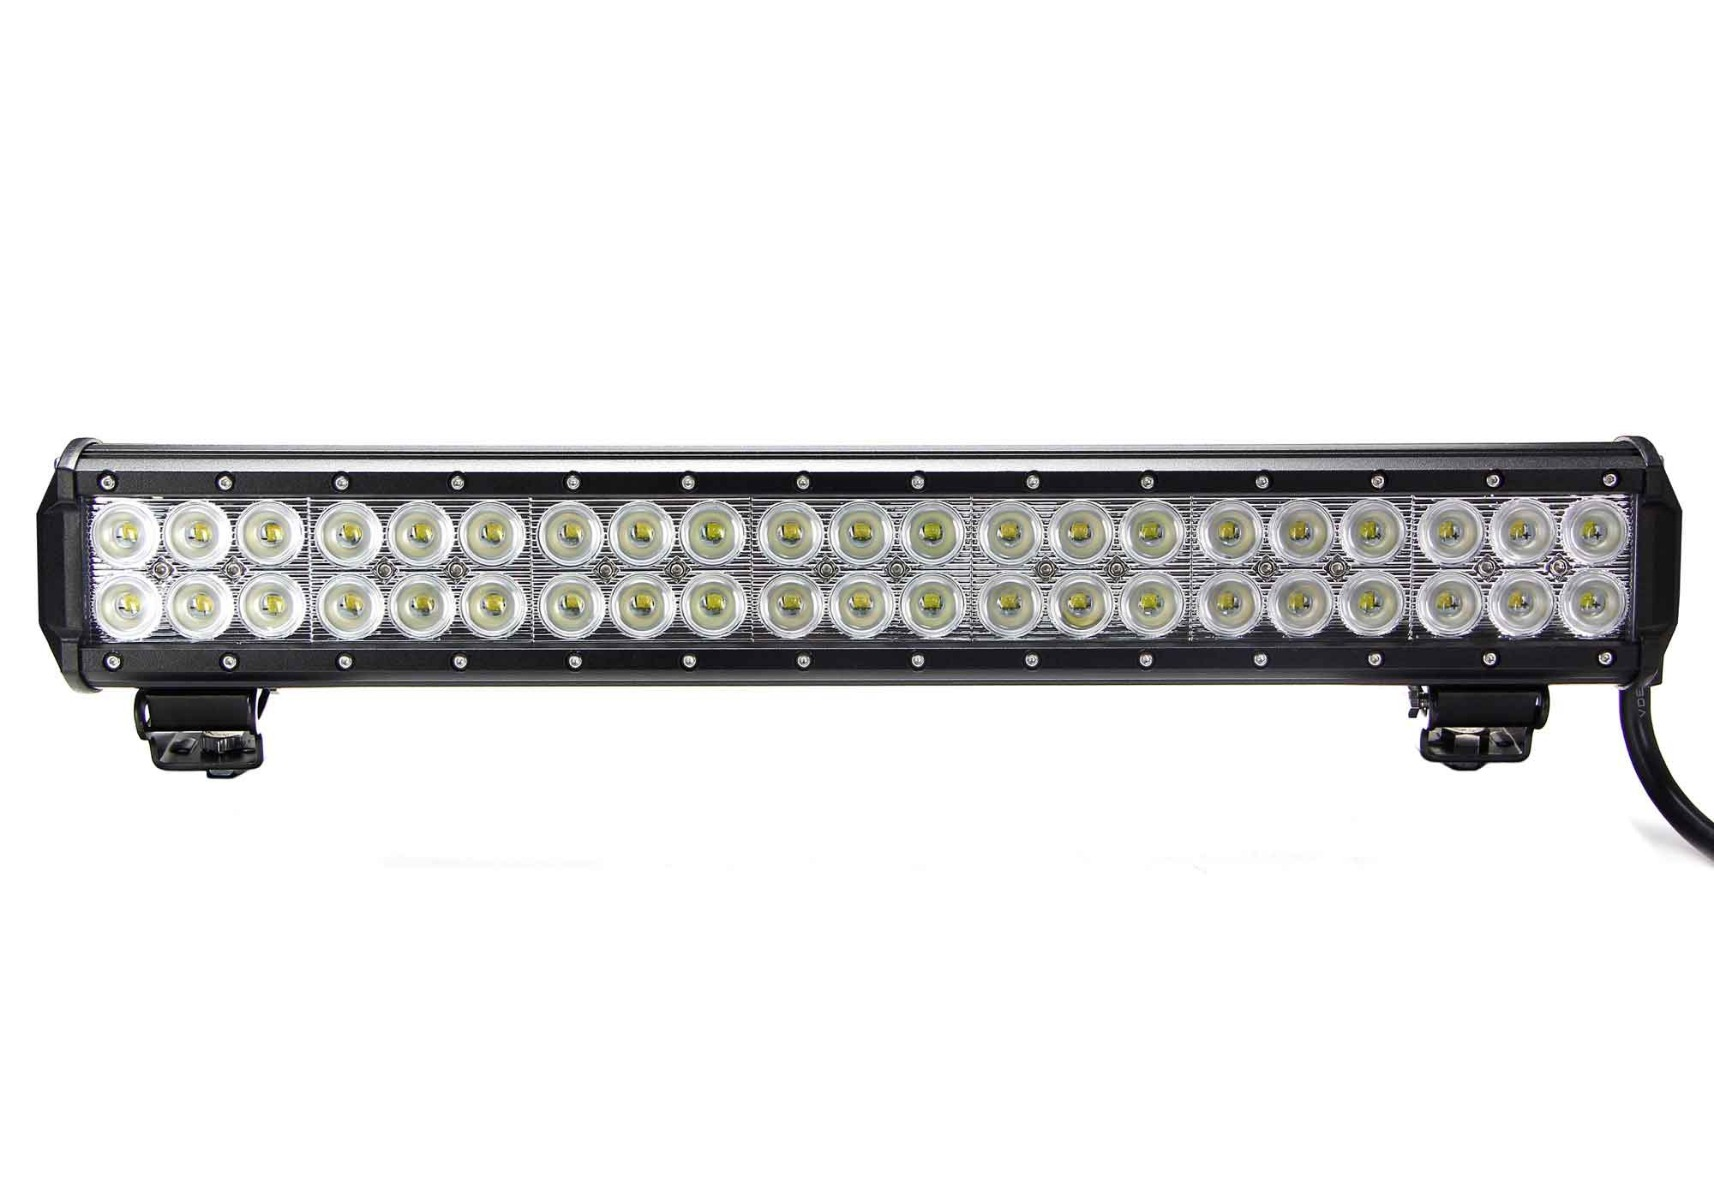 VMN offers LED Light Bars that feature superior optic designs